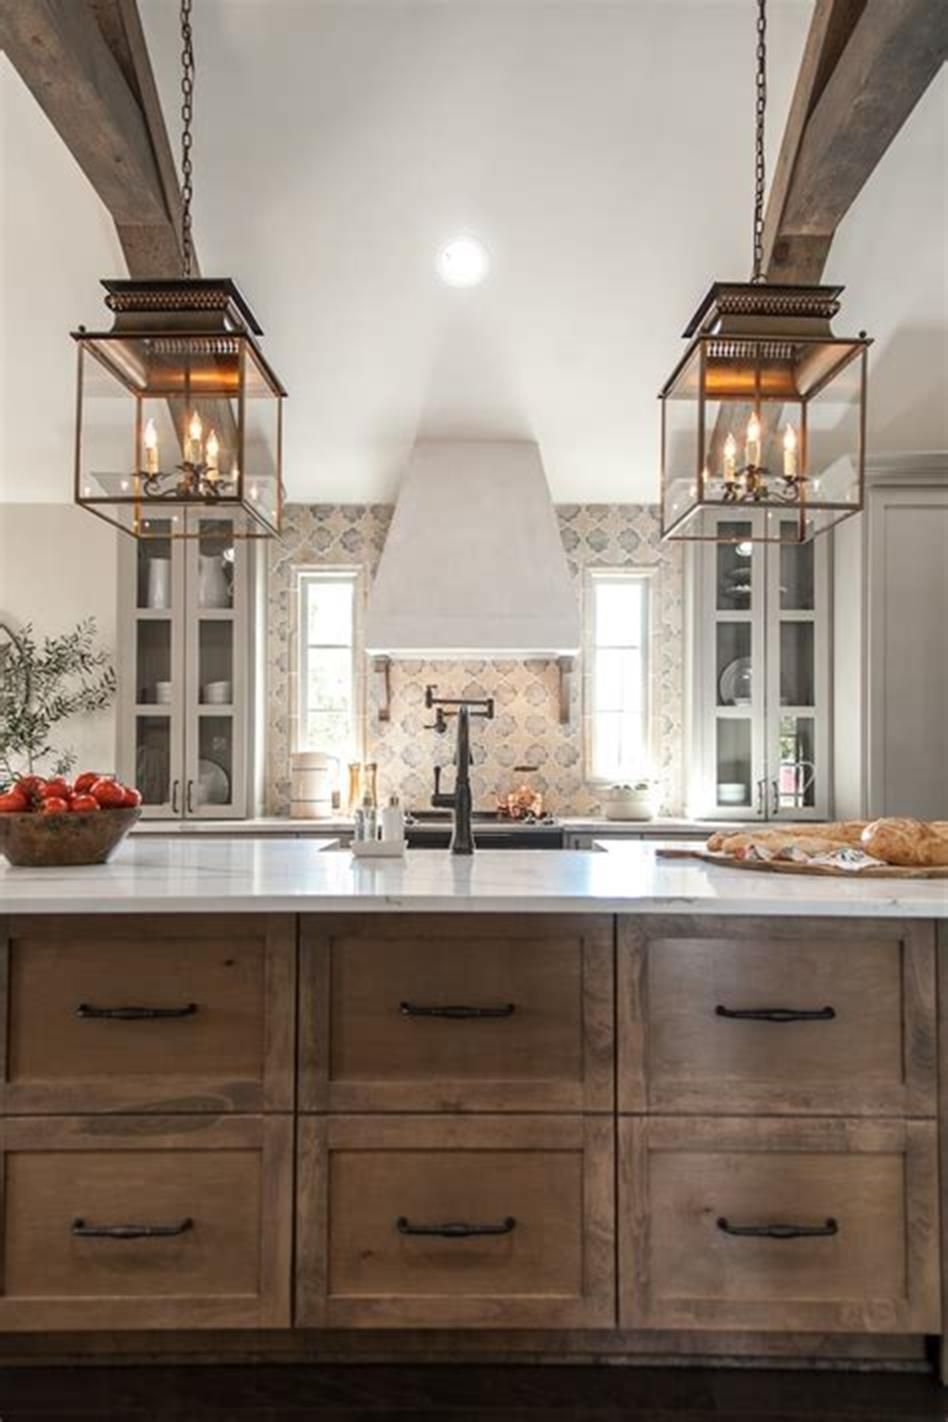 29 Small Kitchen Lighting Ideas Pictures For Low Ceilings Kitchen